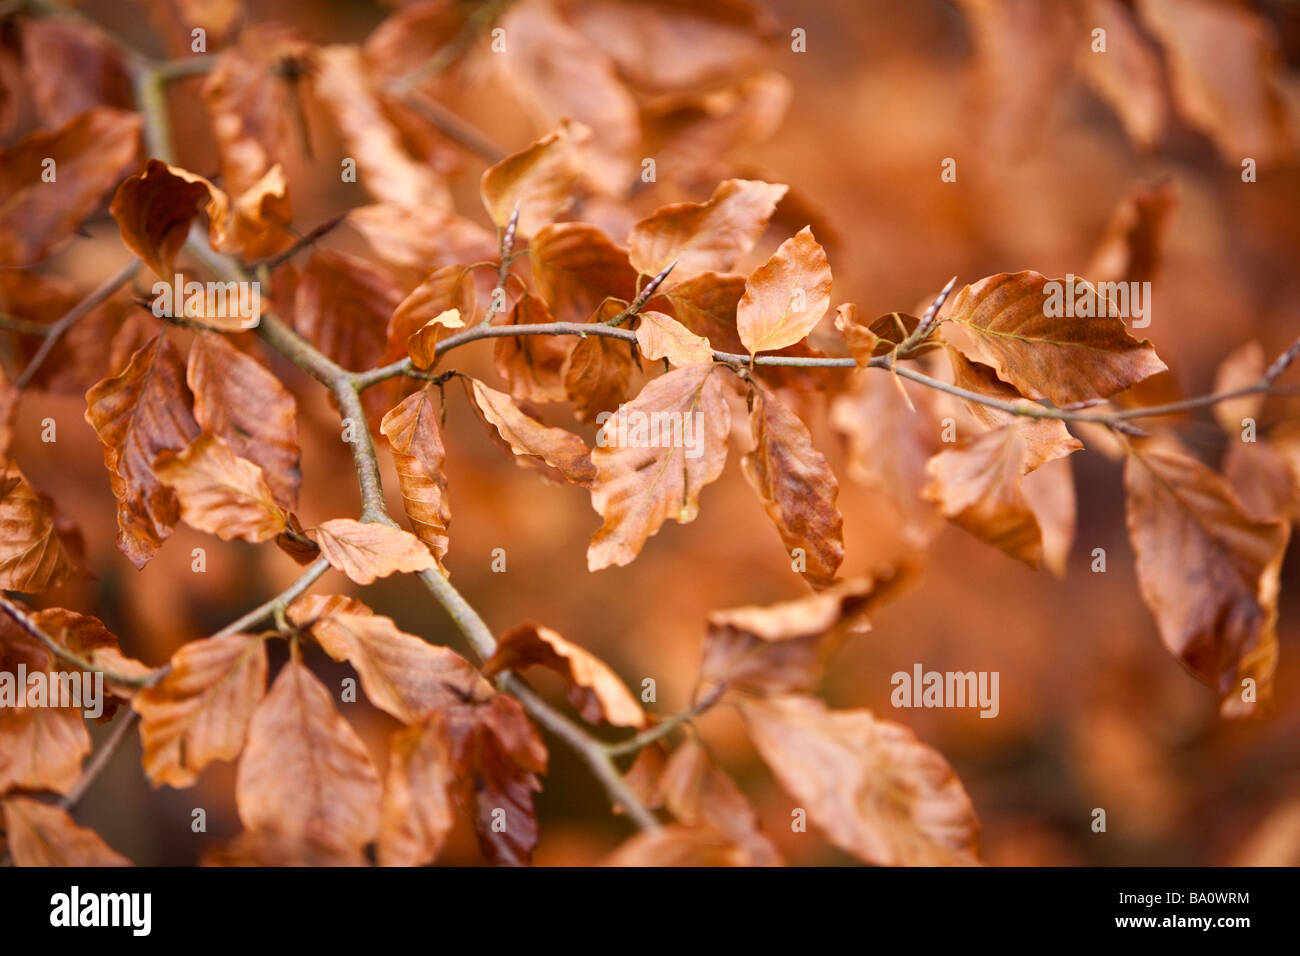 Golden autumn leaves on a branch in the fall - Stock Image